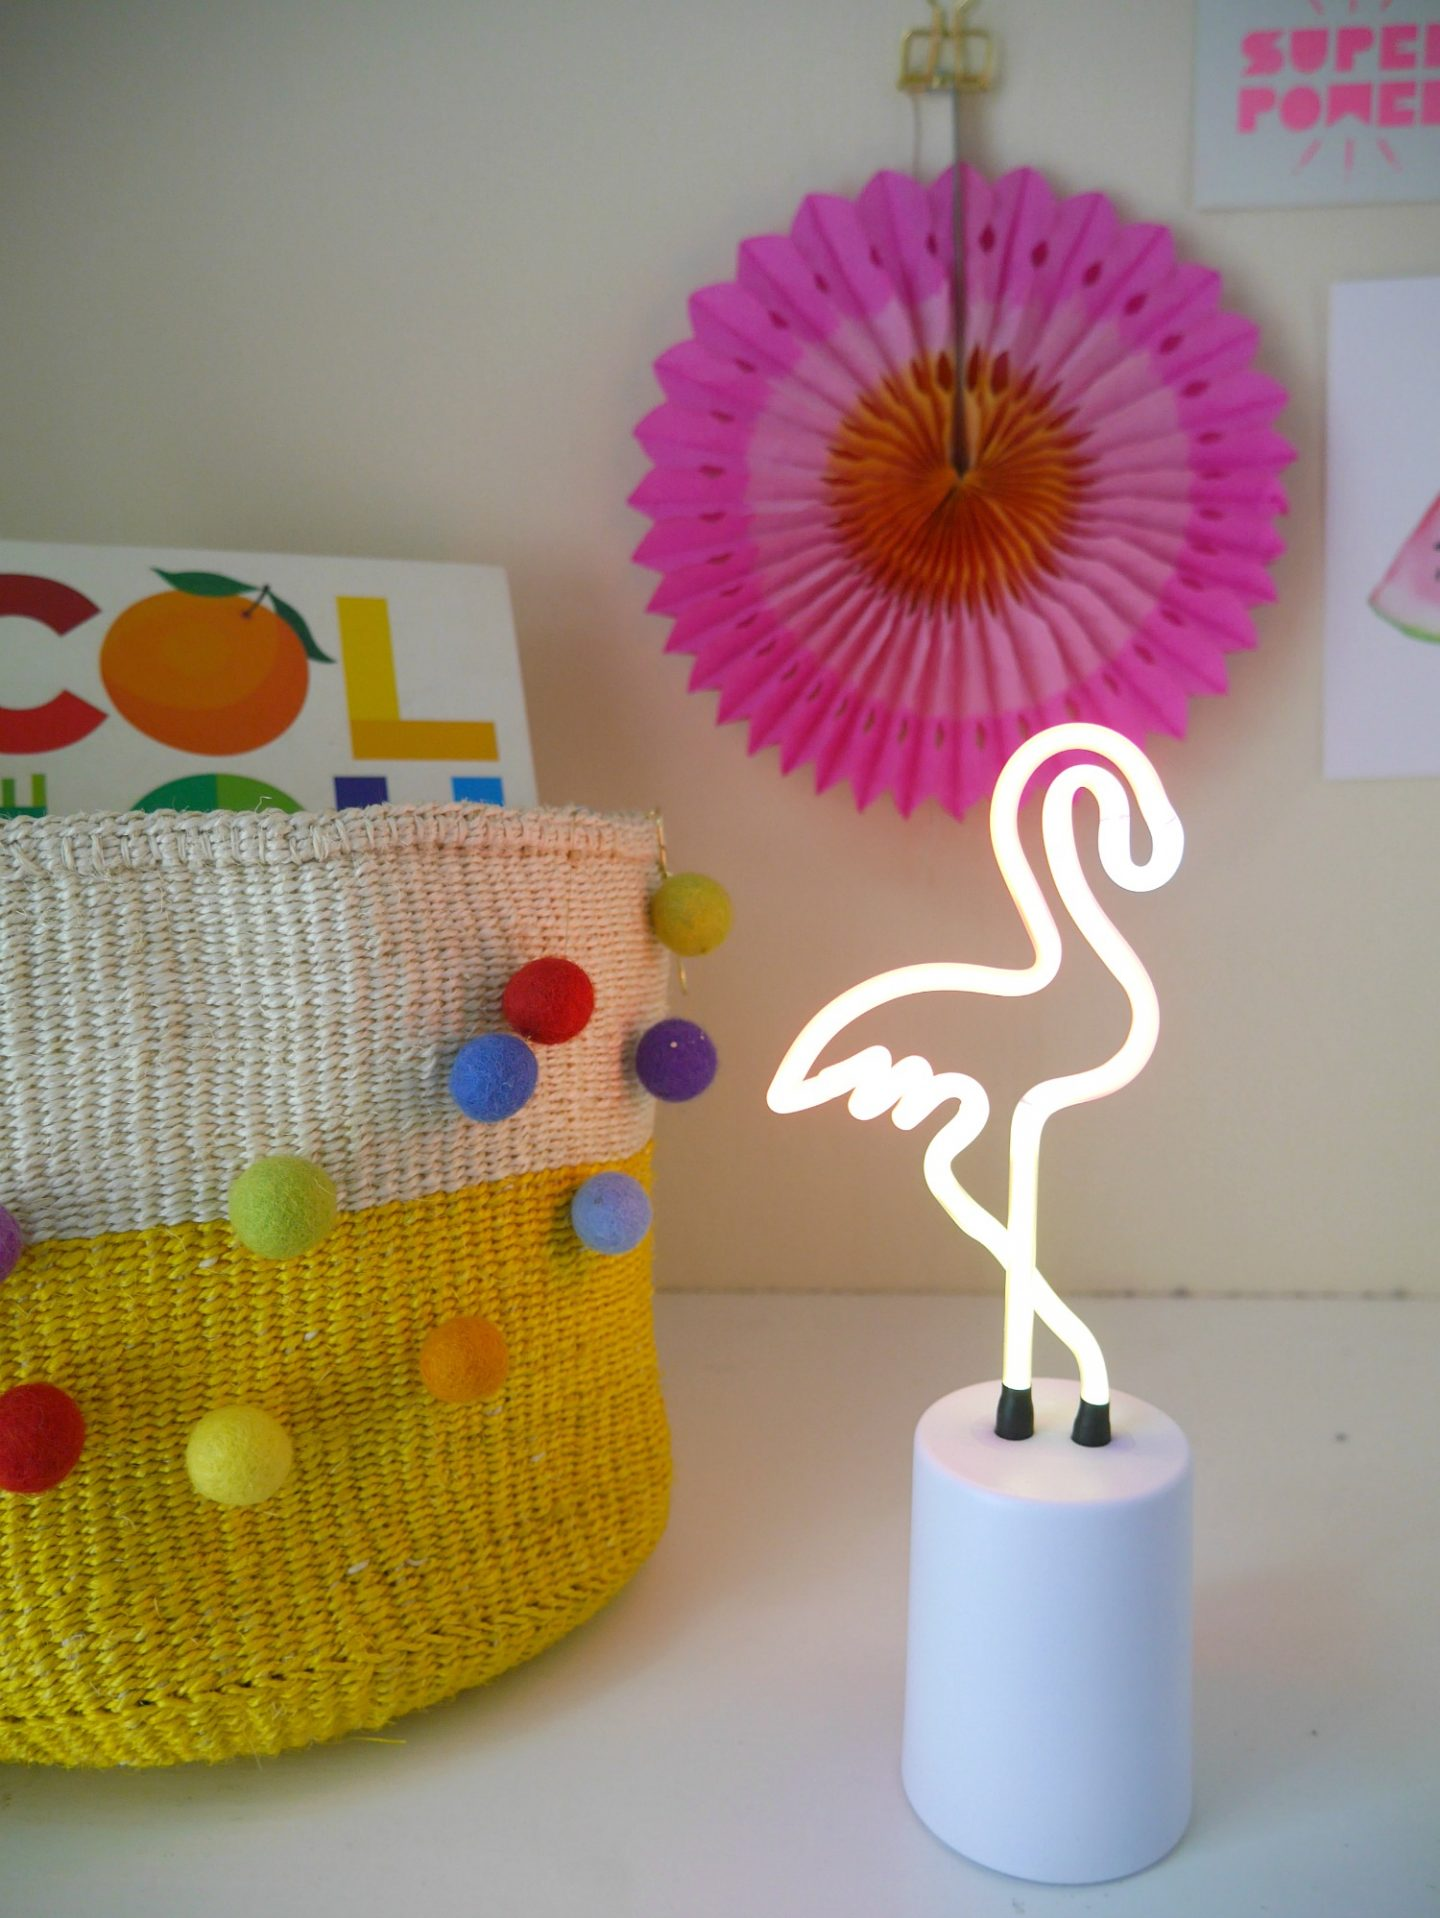 Home styling tips for spring - flamingo neon light